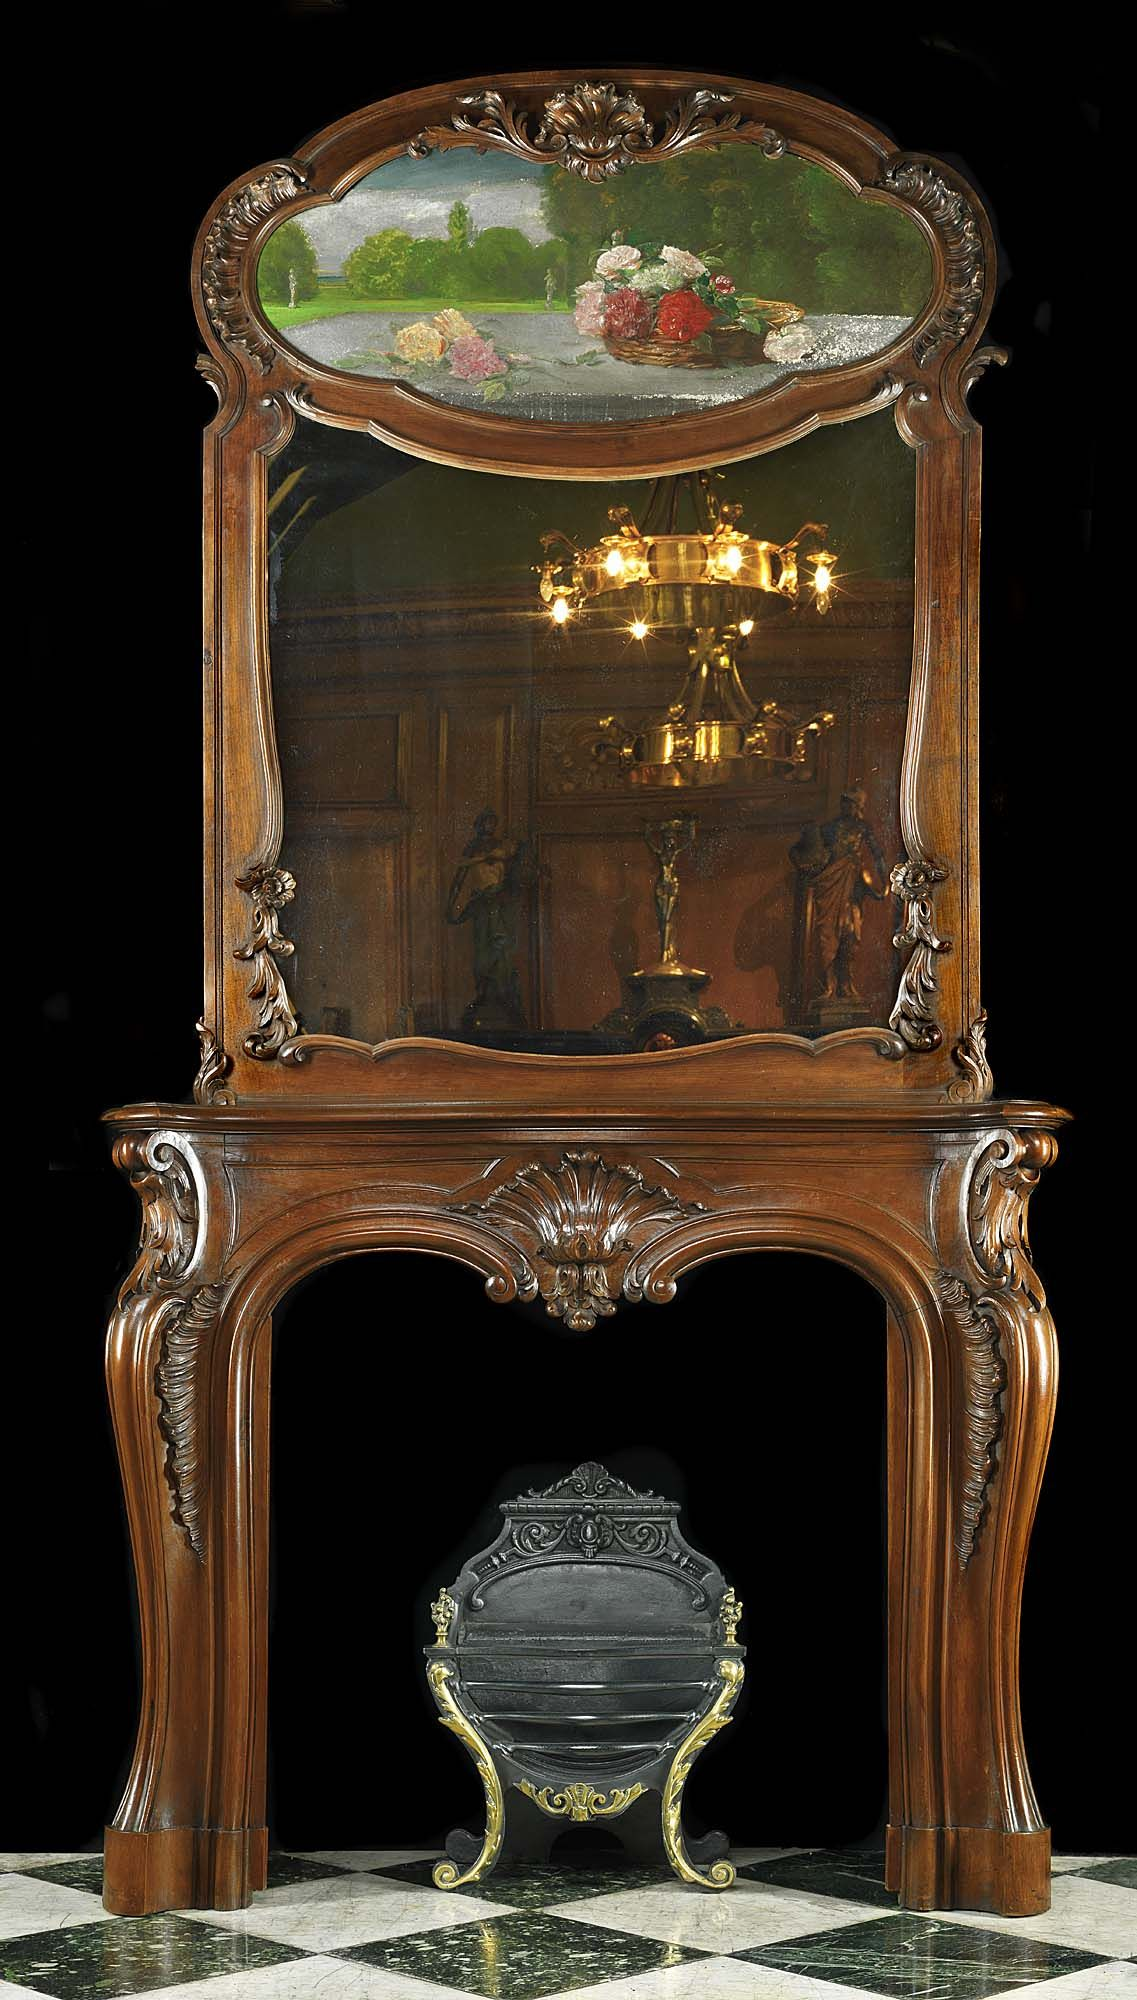 Antique French Fireplace Mantel Amp Trumeau In Walnut With